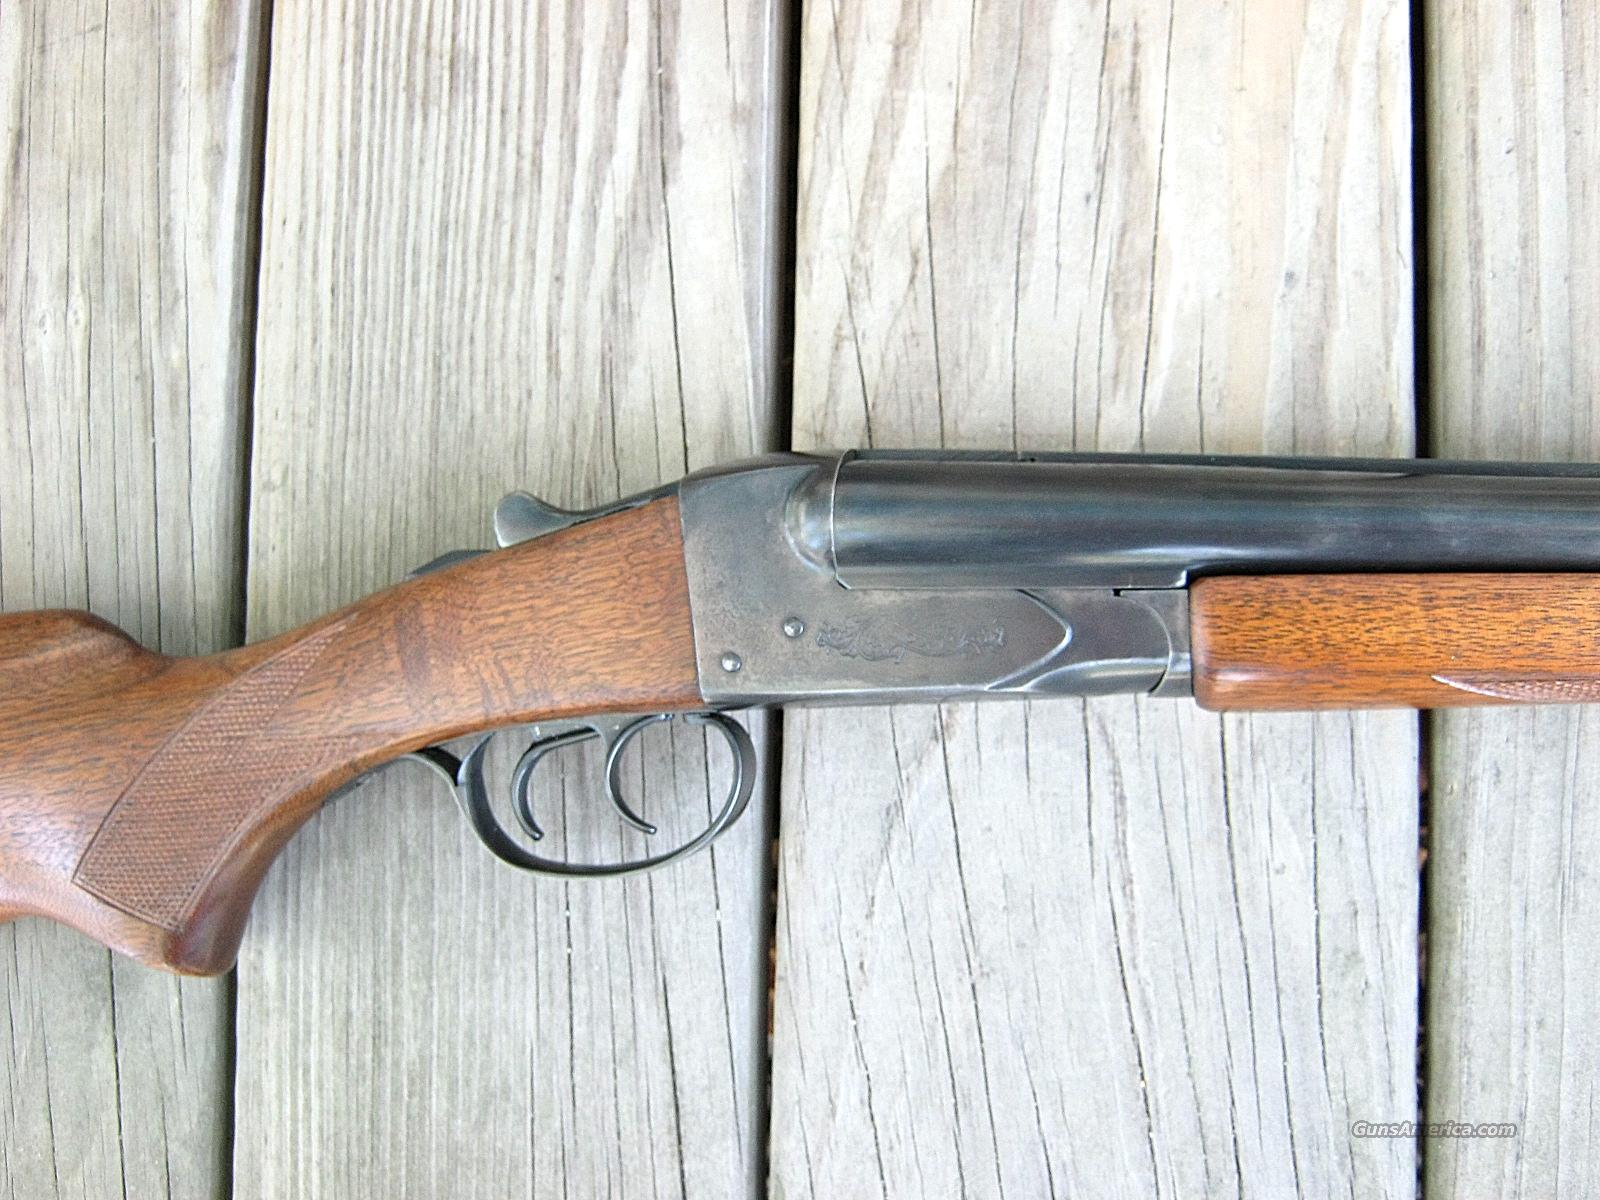 SAVAGE FOX MODEL B 20 GAUGE NICE!  Guns > Shotguns > Savage Shotguns